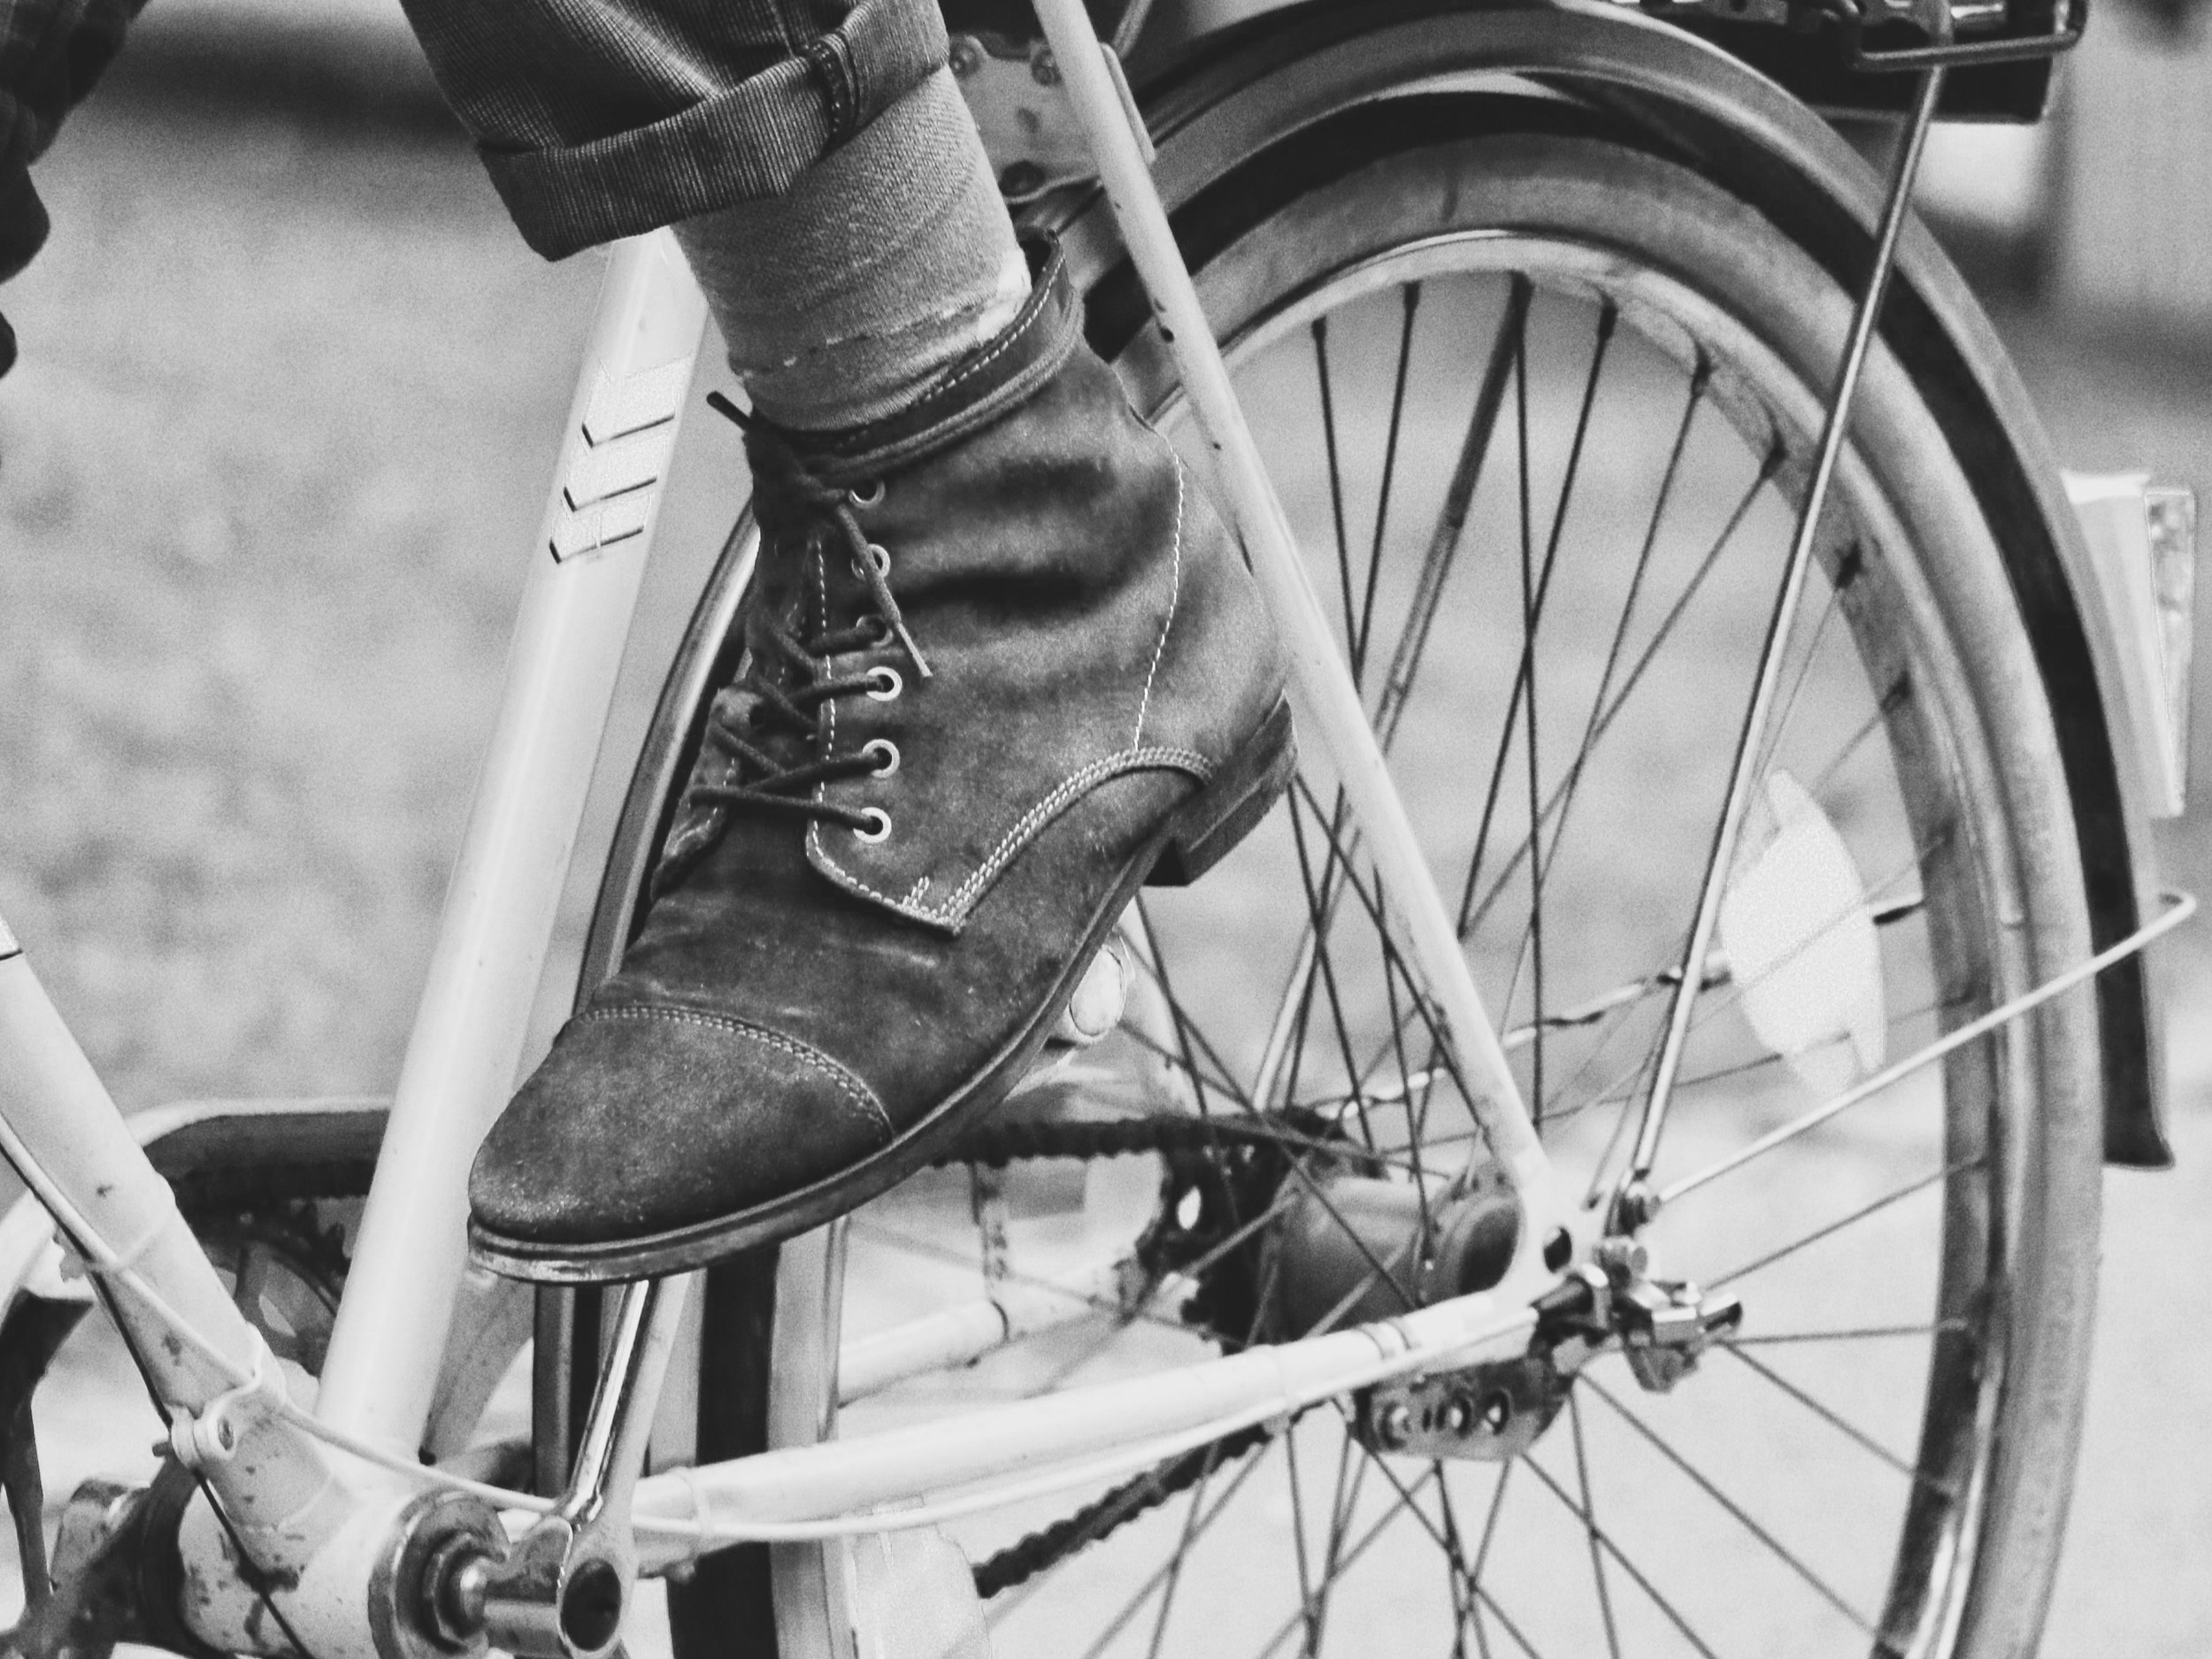 Road cycling lessons - Learn how to use your local roads safely by COMPLETING the National standard for cycling. there are three stages of this course from beginner skills to riding with traffic on multilane roads and roundabouts